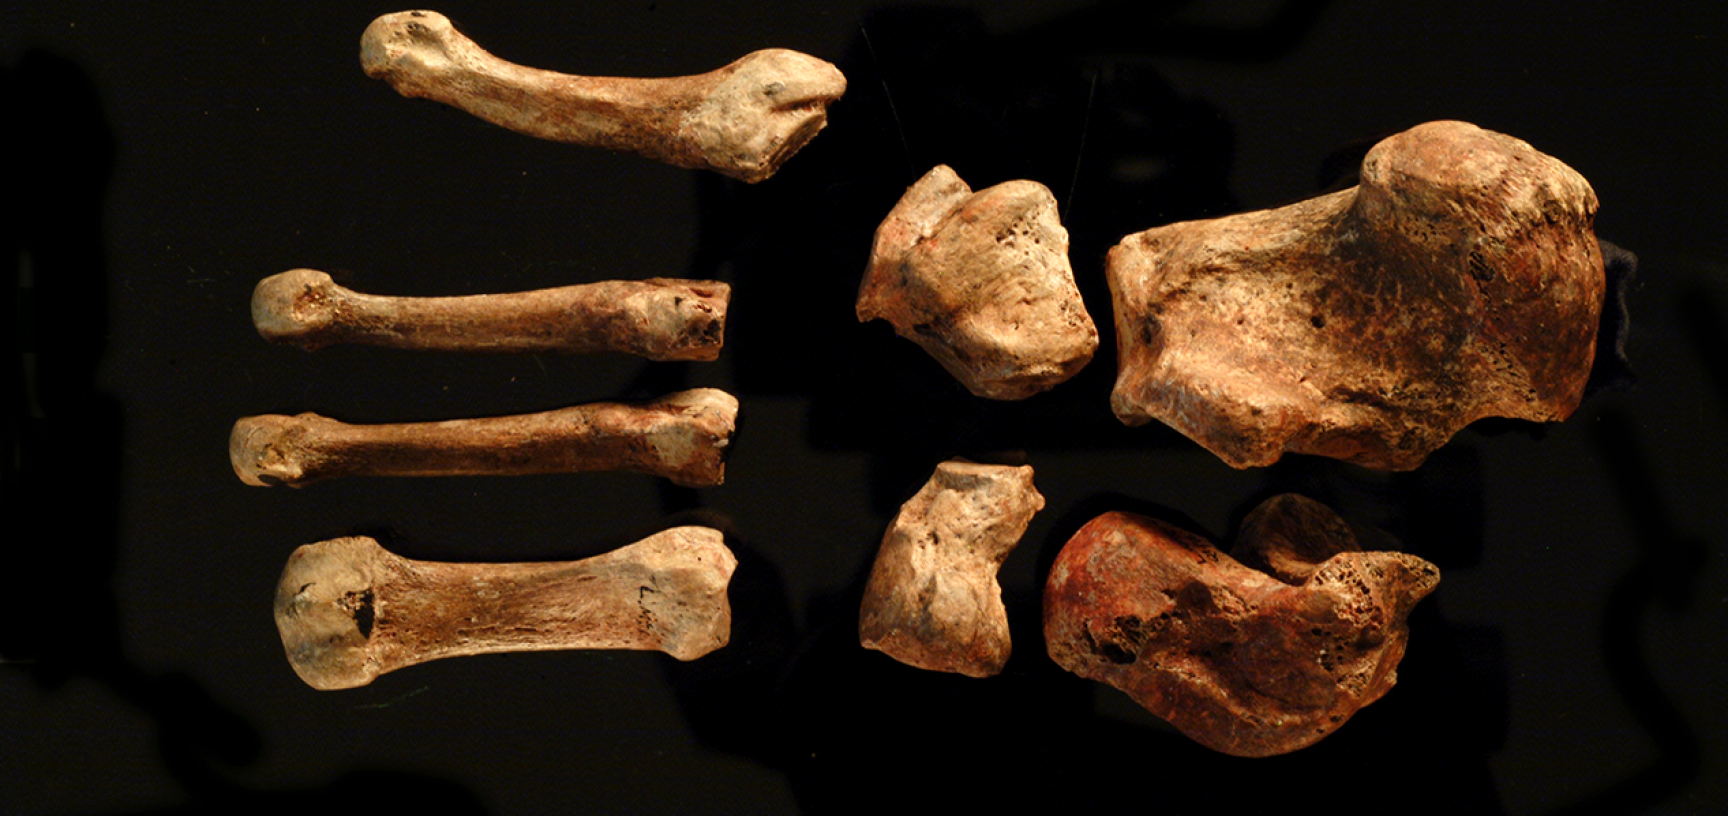 Bones of the left foot.